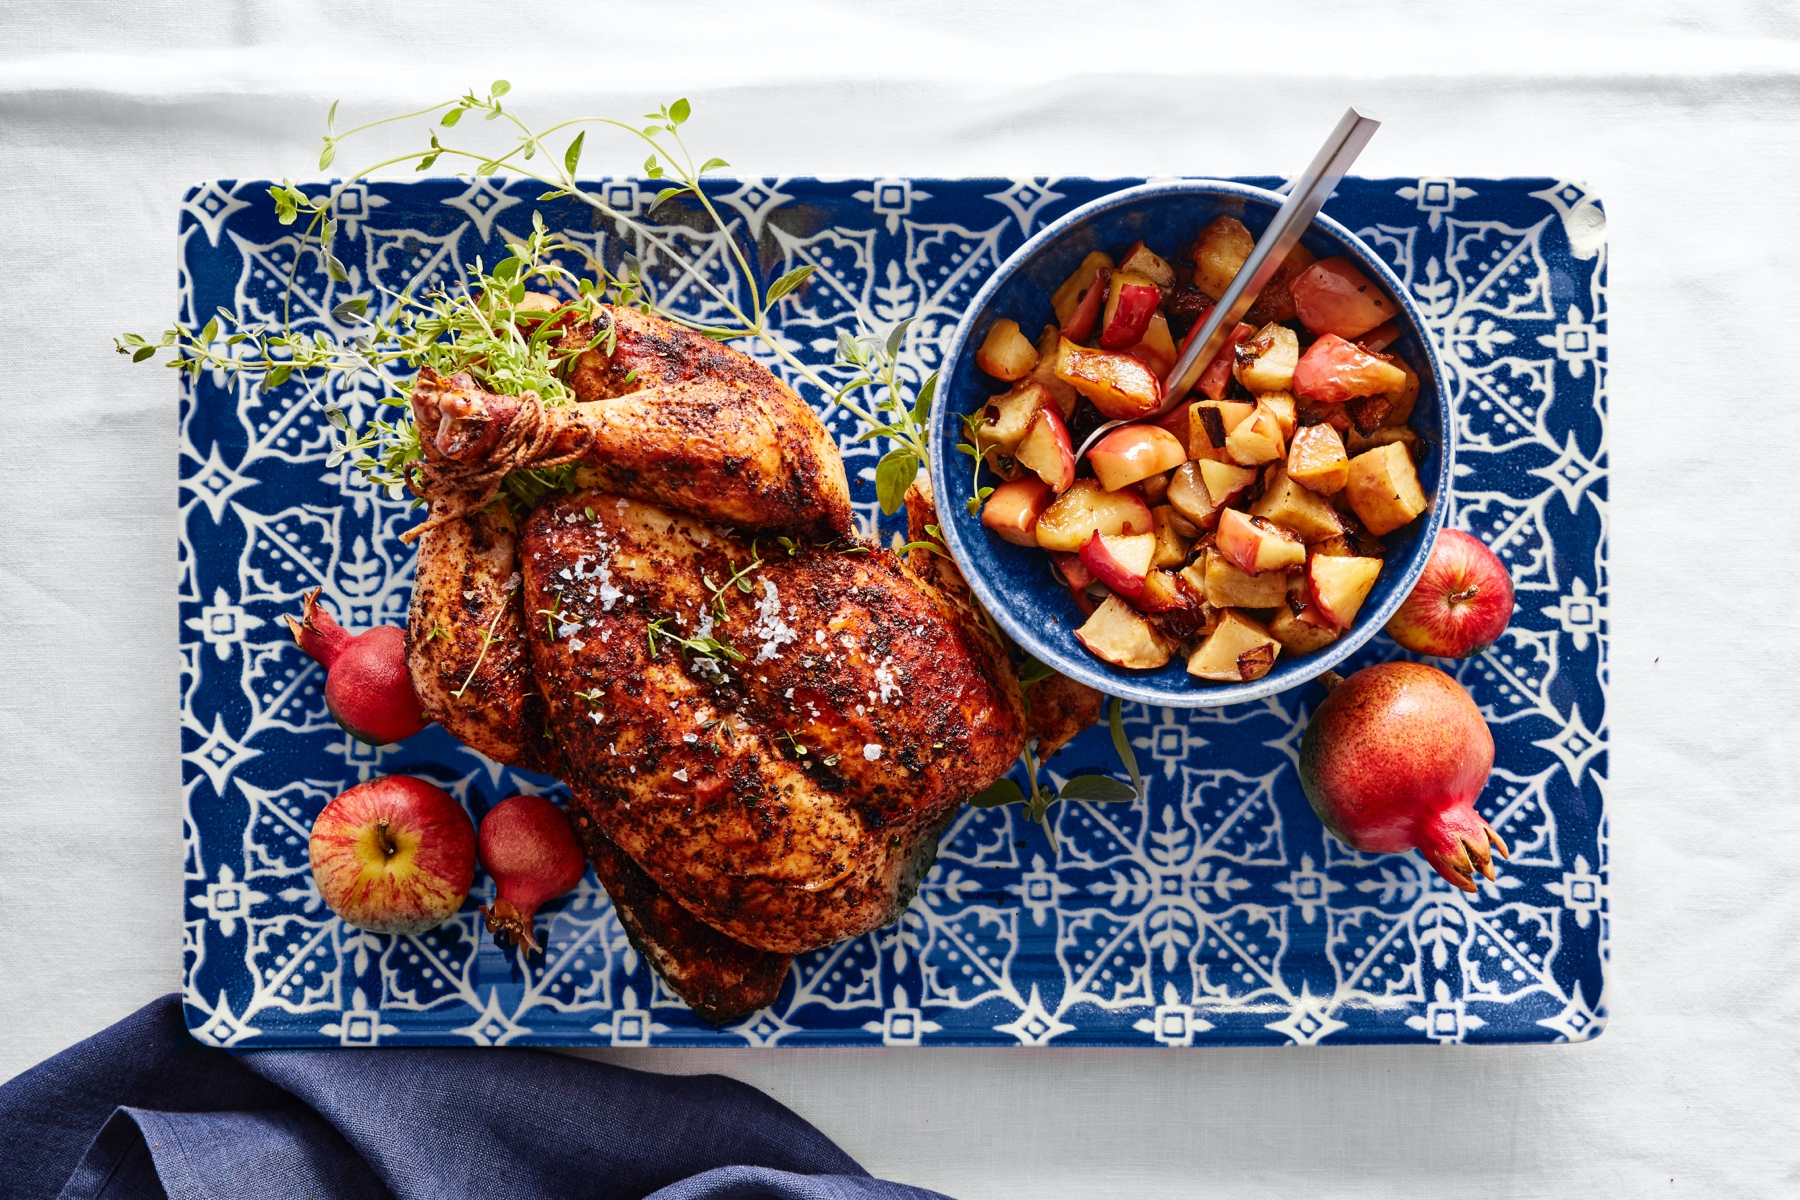 Roasted Spiced Chicken with Apples